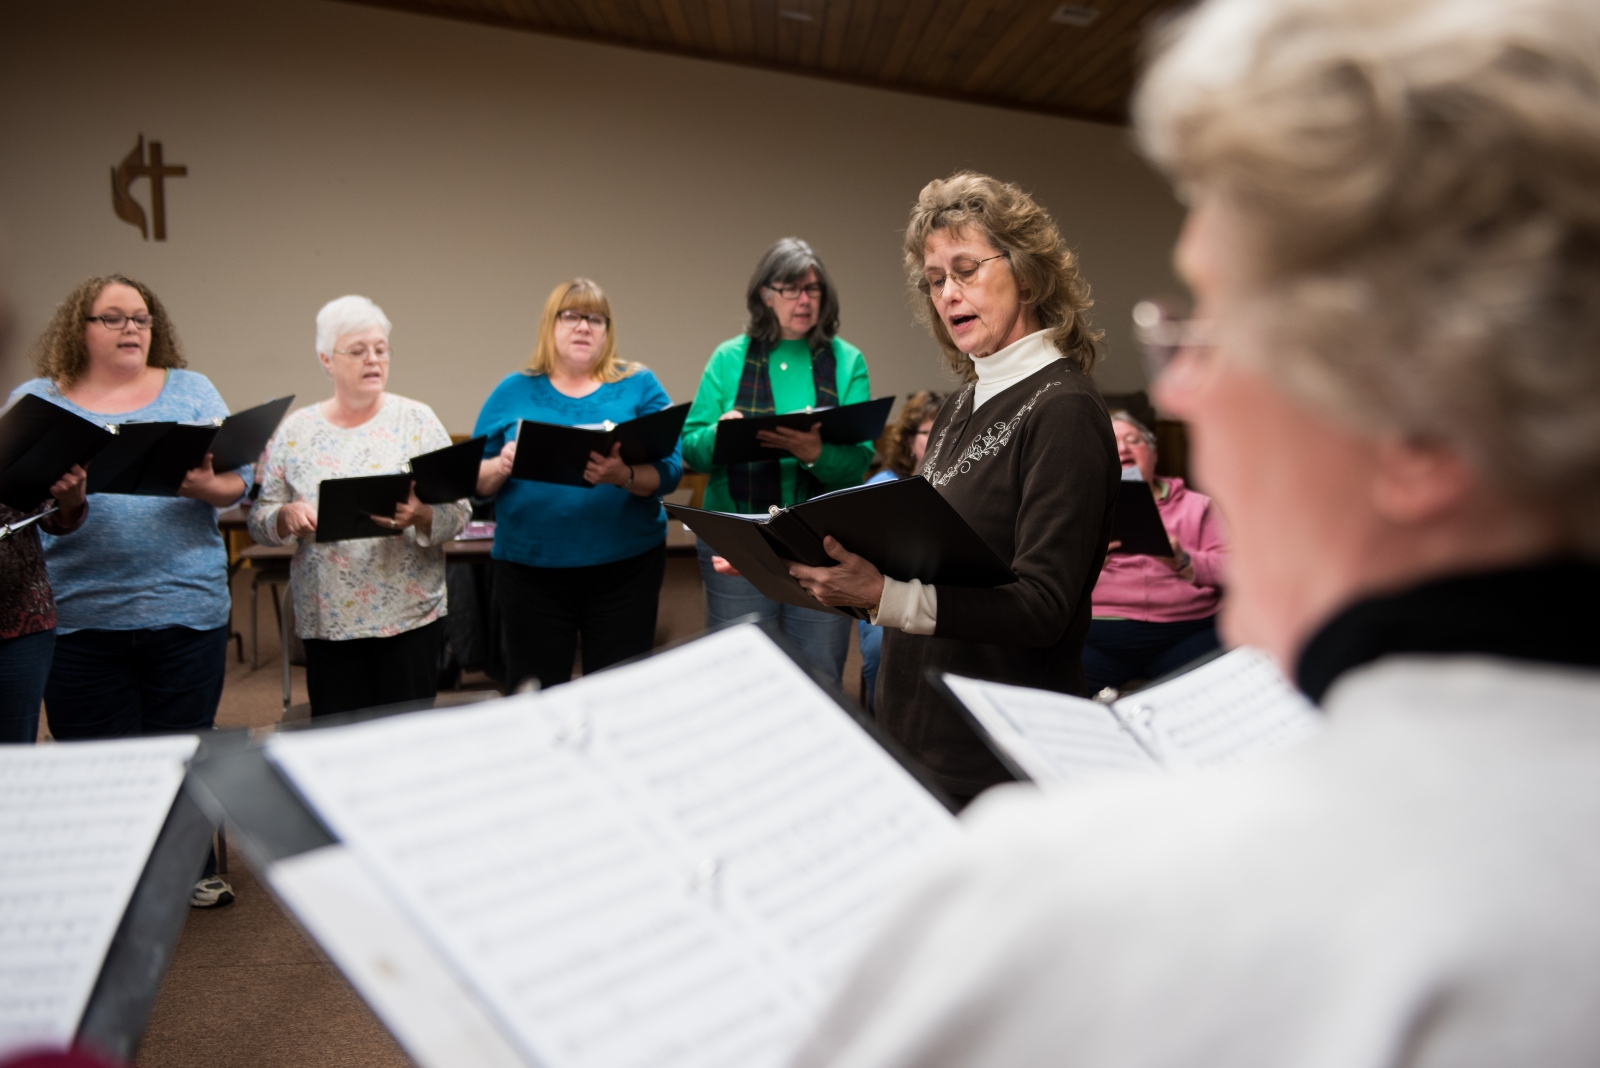 Martha Sue Matheny, director of the Unity Singers community Choir, leads a practice session at the Coolville United Methodist Church. (back row, left to right) Judy Reaser, Bonnie Putman, Marsha Cowdery, Kathy Elasky, Sharon Powell, and Katherine Riley sing together with (foreground) Shelba Lipscomb.